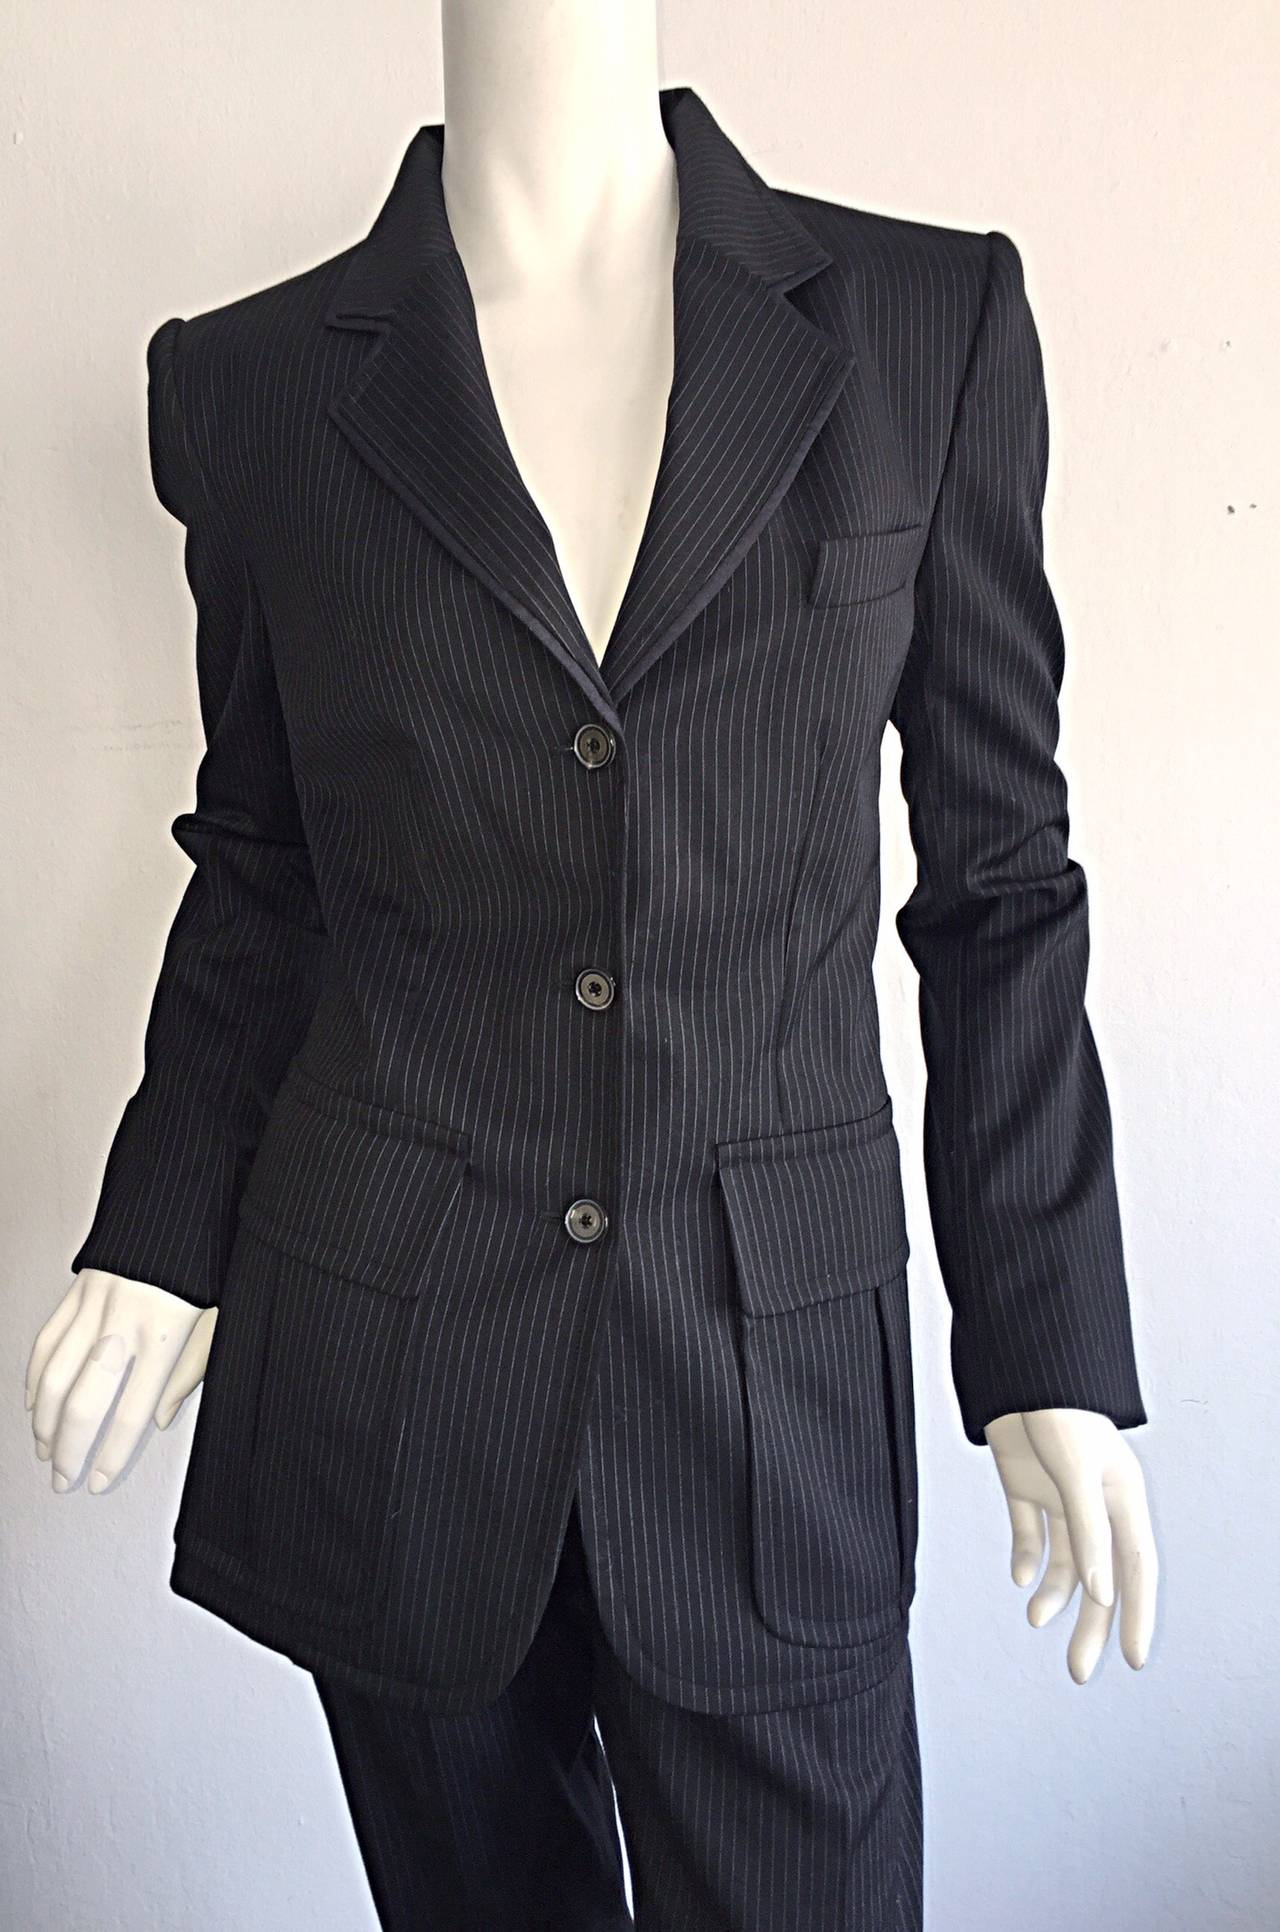 Tom Ford for Yves Saint Laurent Black + White Pinstripe Le Smoking Trouser Suit For Sale 3